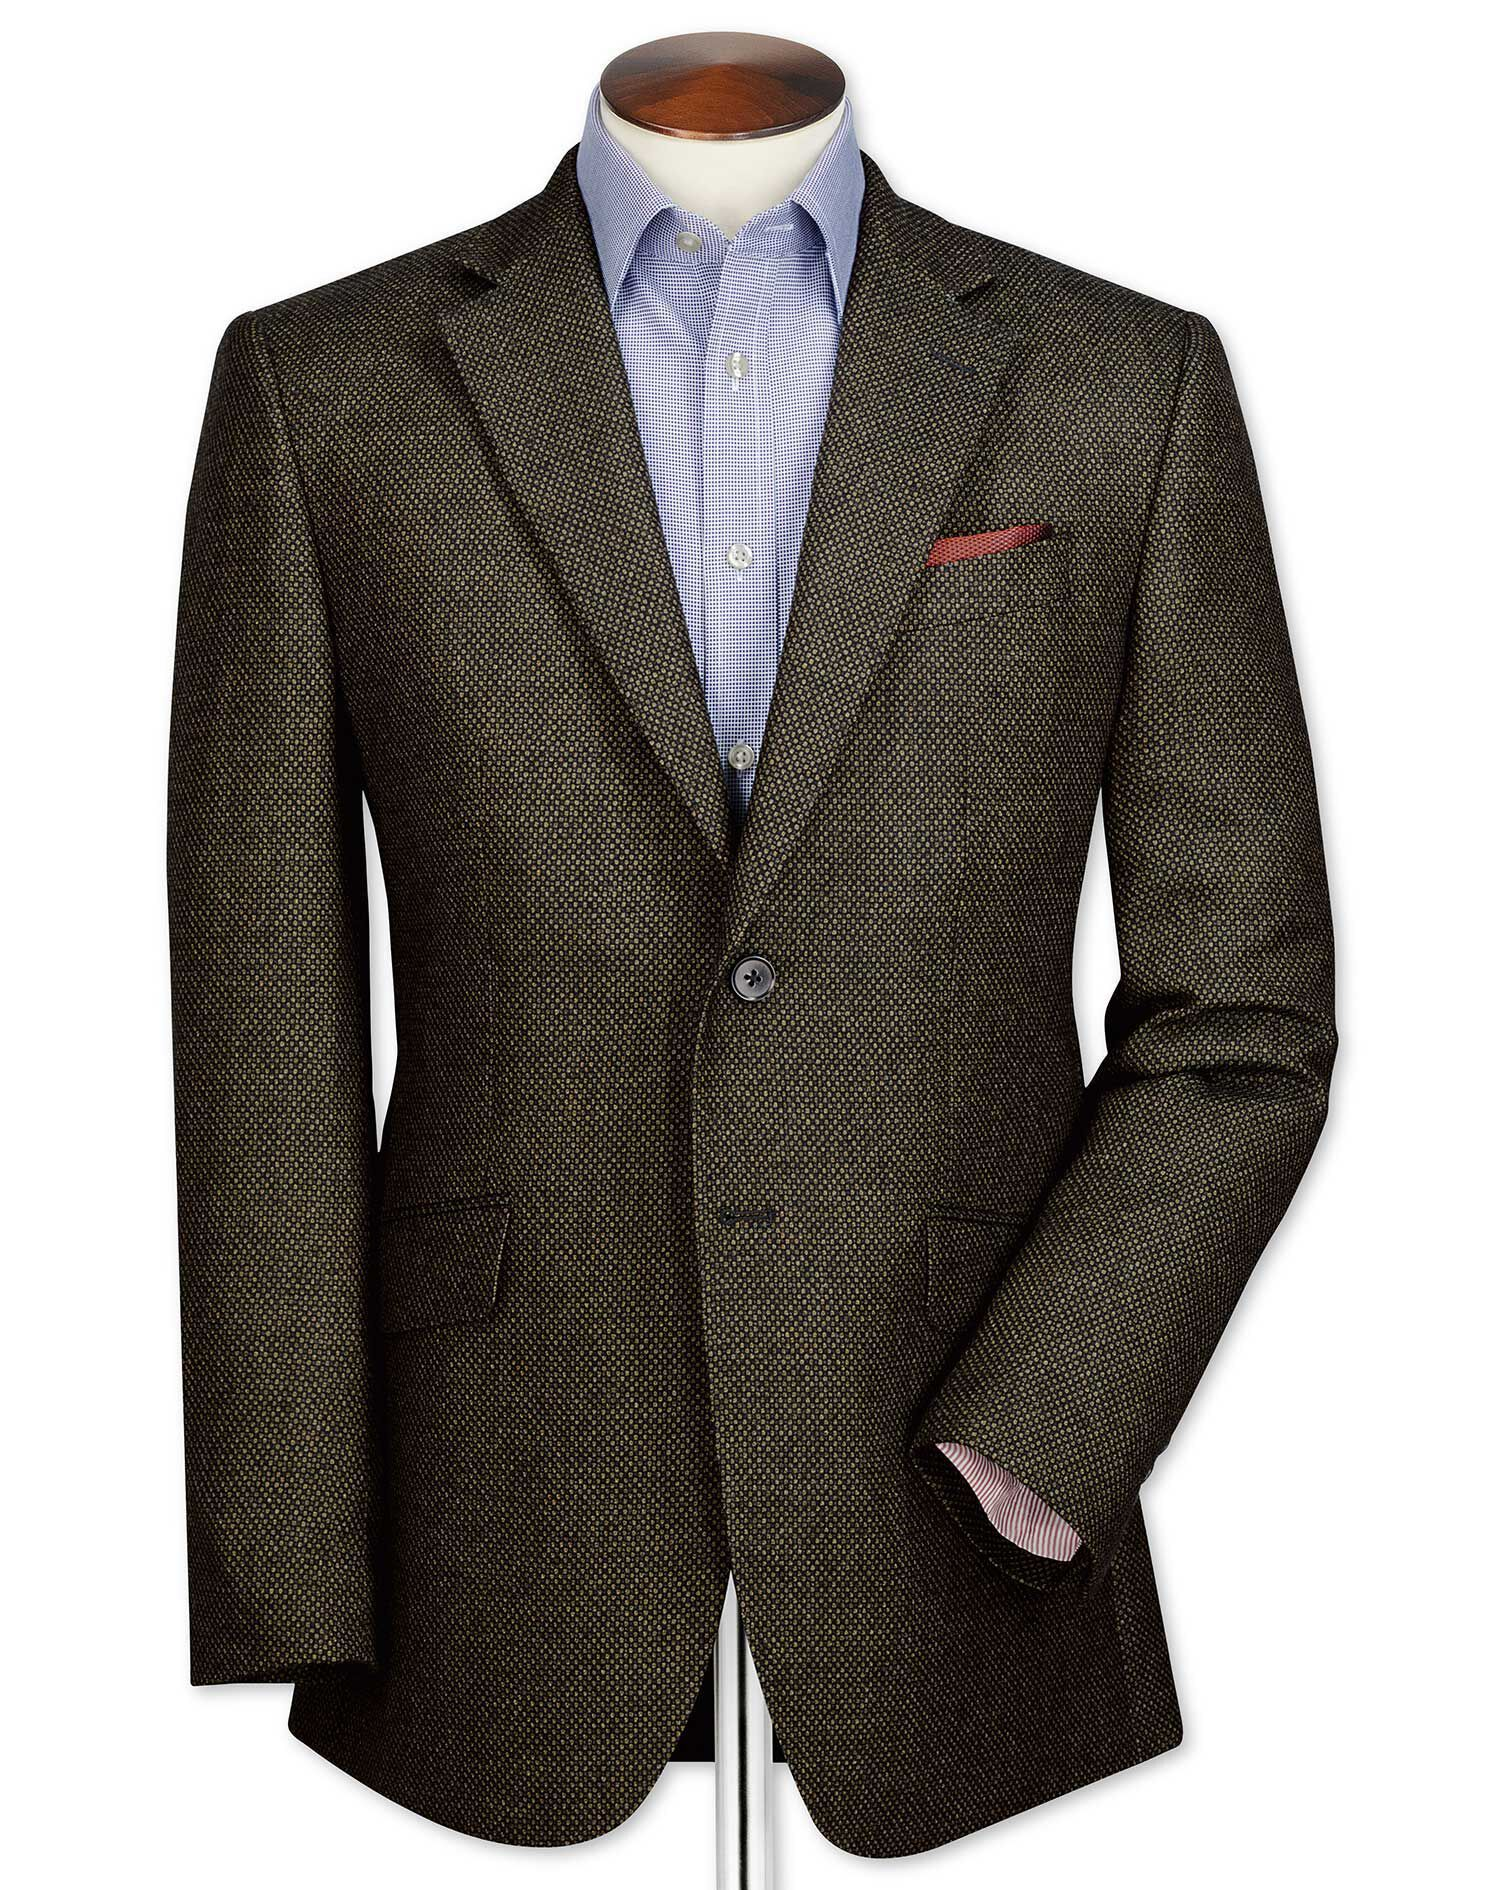 Slim Fit Olive Birdseye Lambswool Wool Jacket Size 46 Long by Charles Tyrwhitt